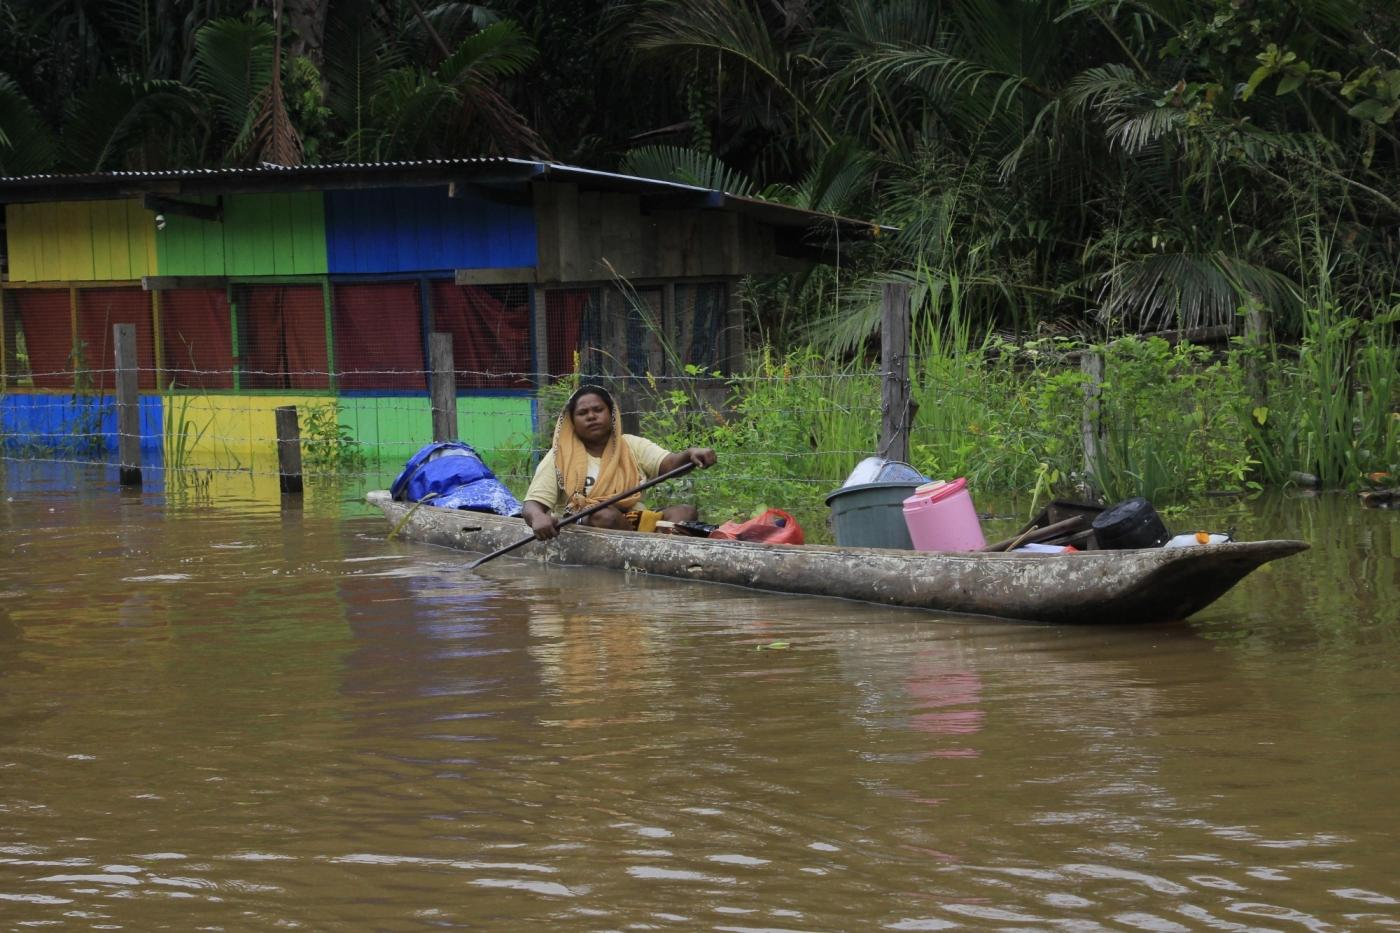 SENTANI, March 20, 2019 (Xinhua) -- A woman rides a boat through flood water in Sentani, Papua province, Indonesia, March 19, 2019. Indonesian disaster authorities have put the death toll of flash floods and landslides in eastern province of Papua at 89 while the search and rescue operation for 74 missing persons continues, official said here on Tuesday. (Xinhua/Ikha/IANS) by .